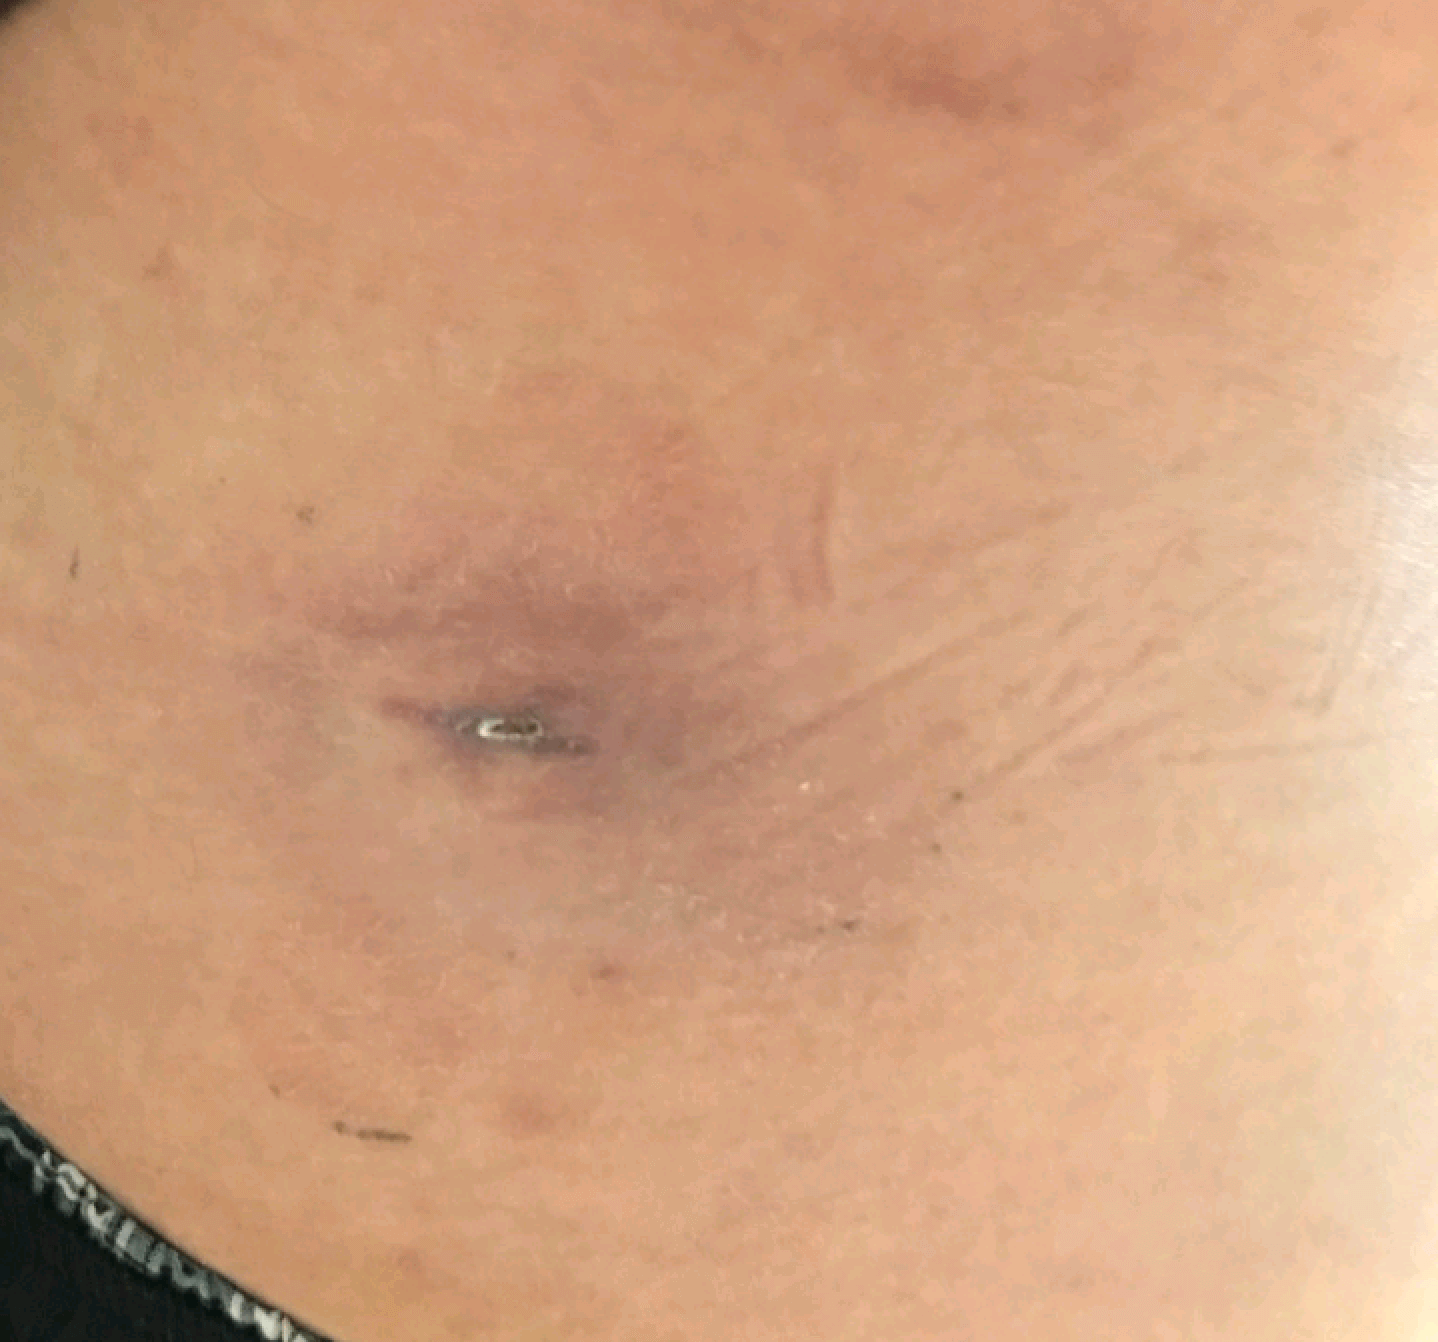 Infected Sebaceous Cyst After